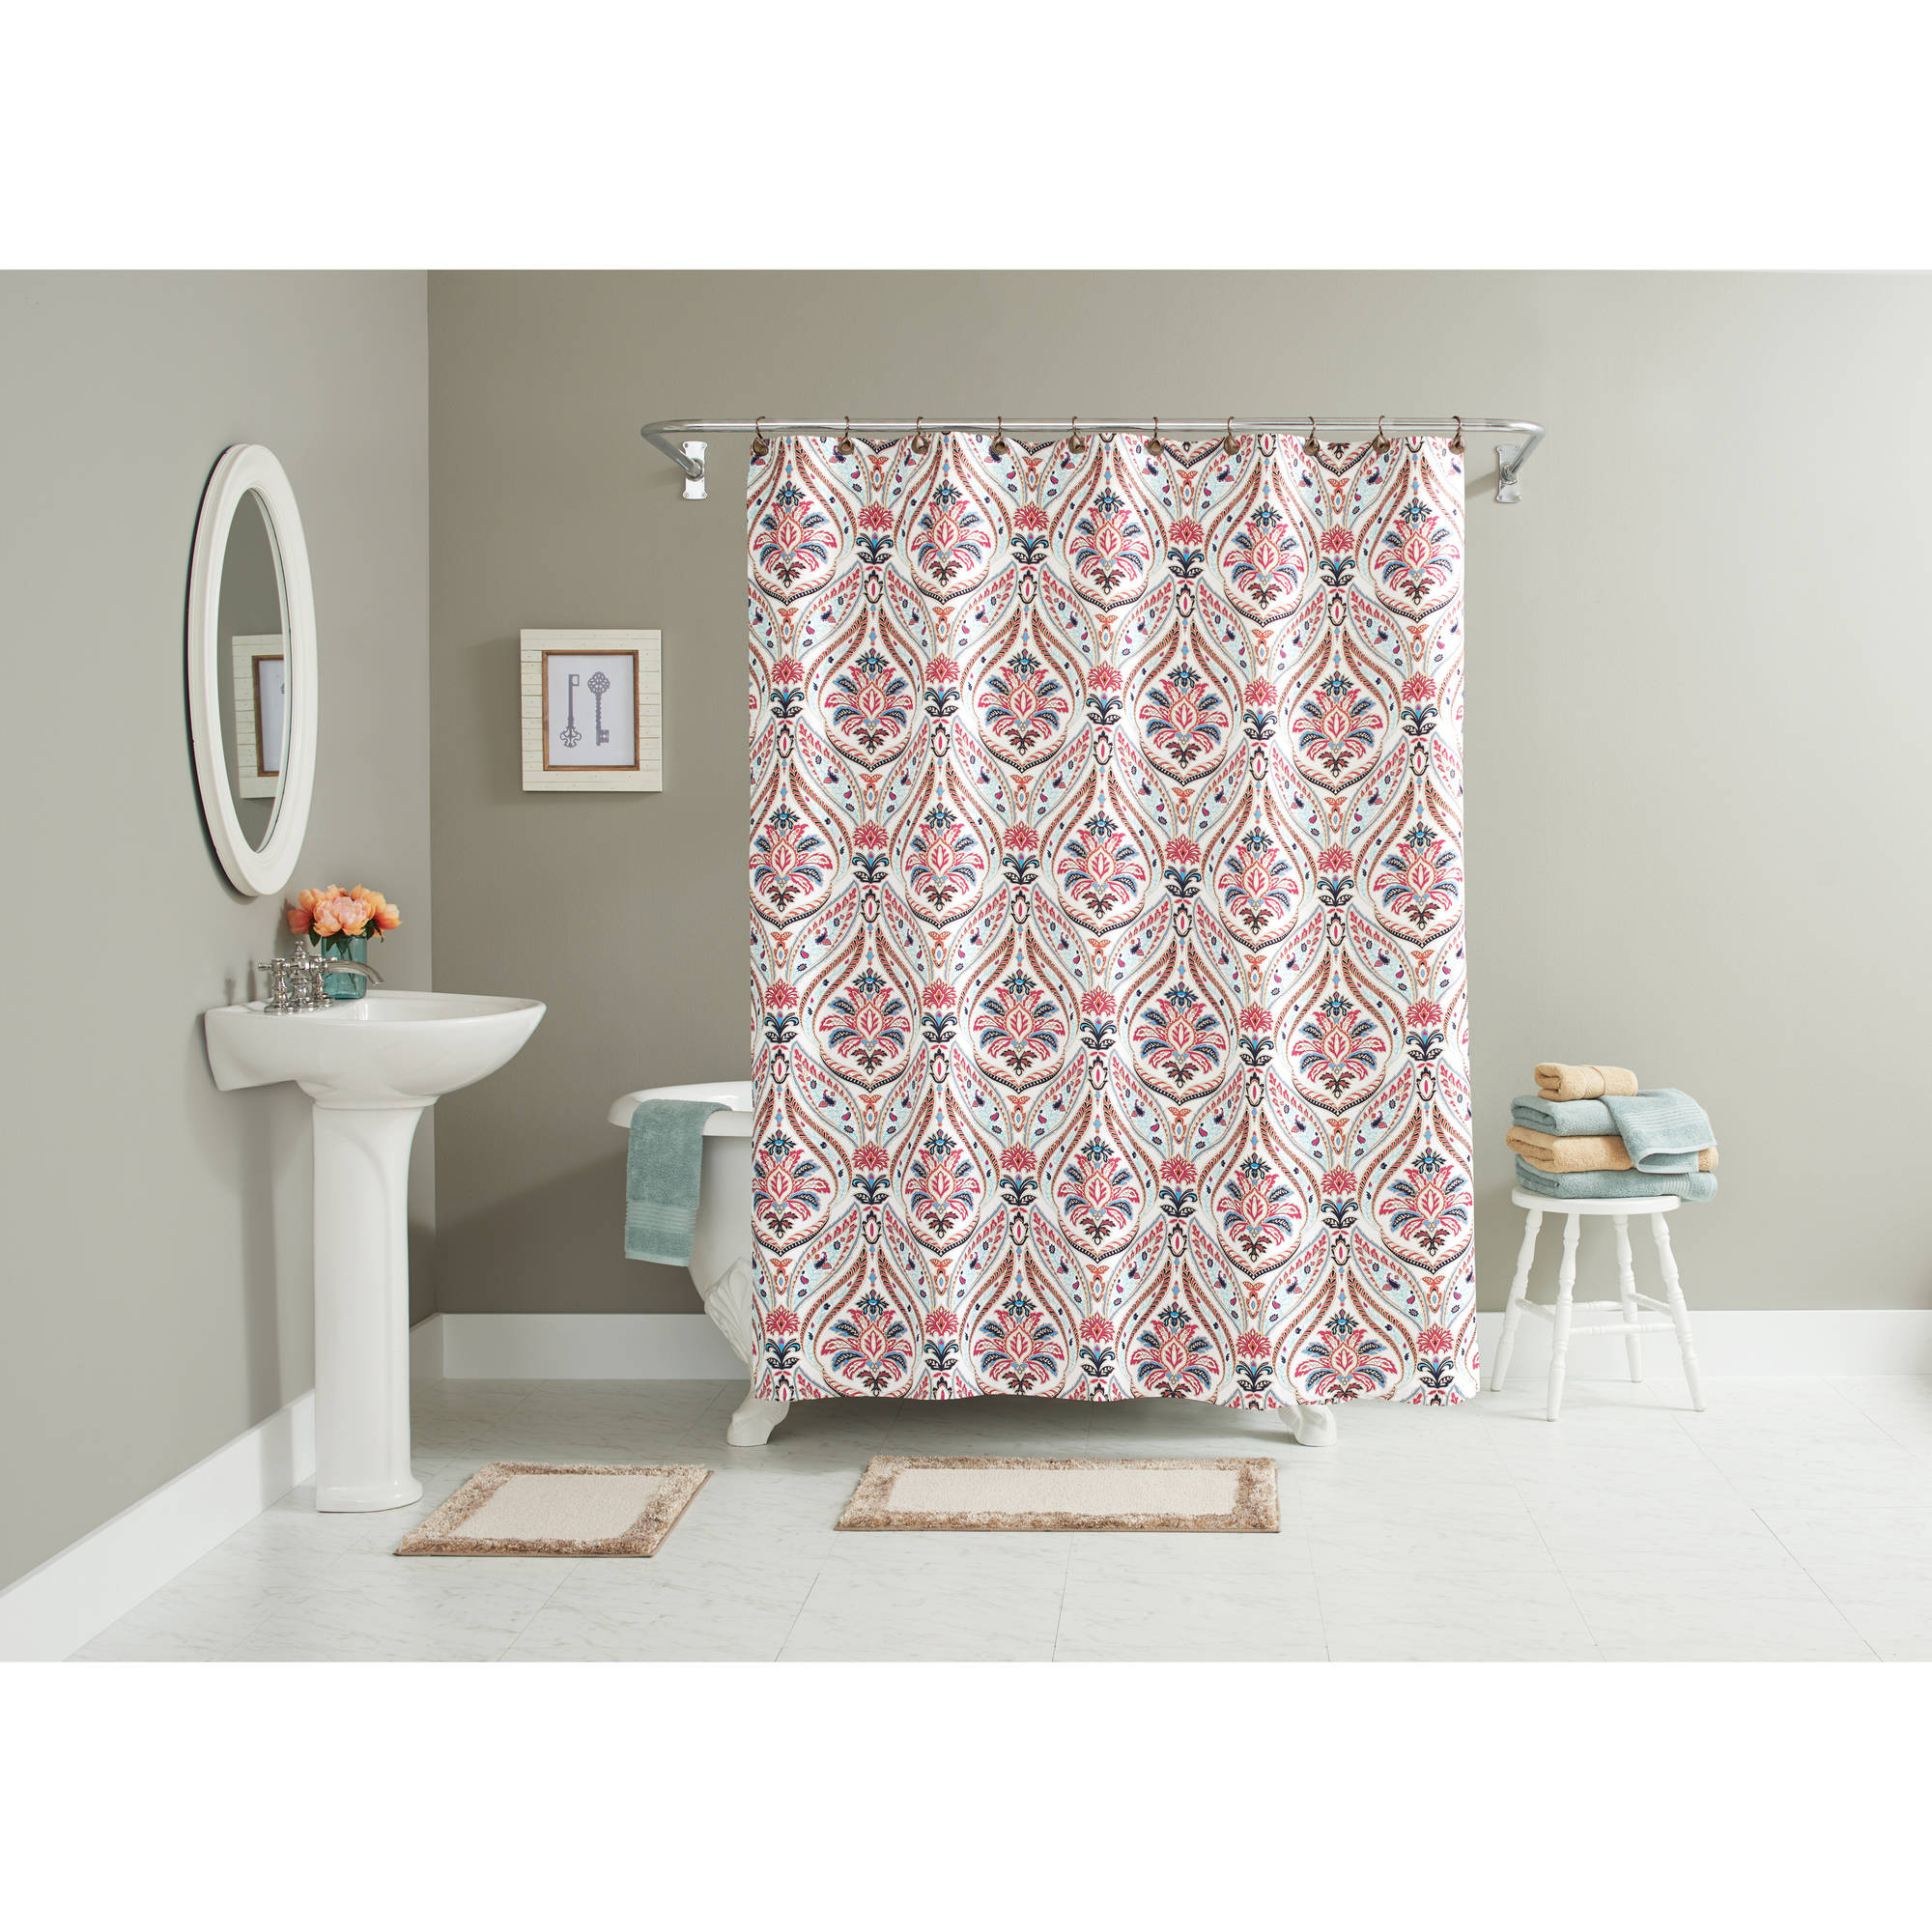 Better home and gardens shower curtains curtain Better homes and gardens shower curtains